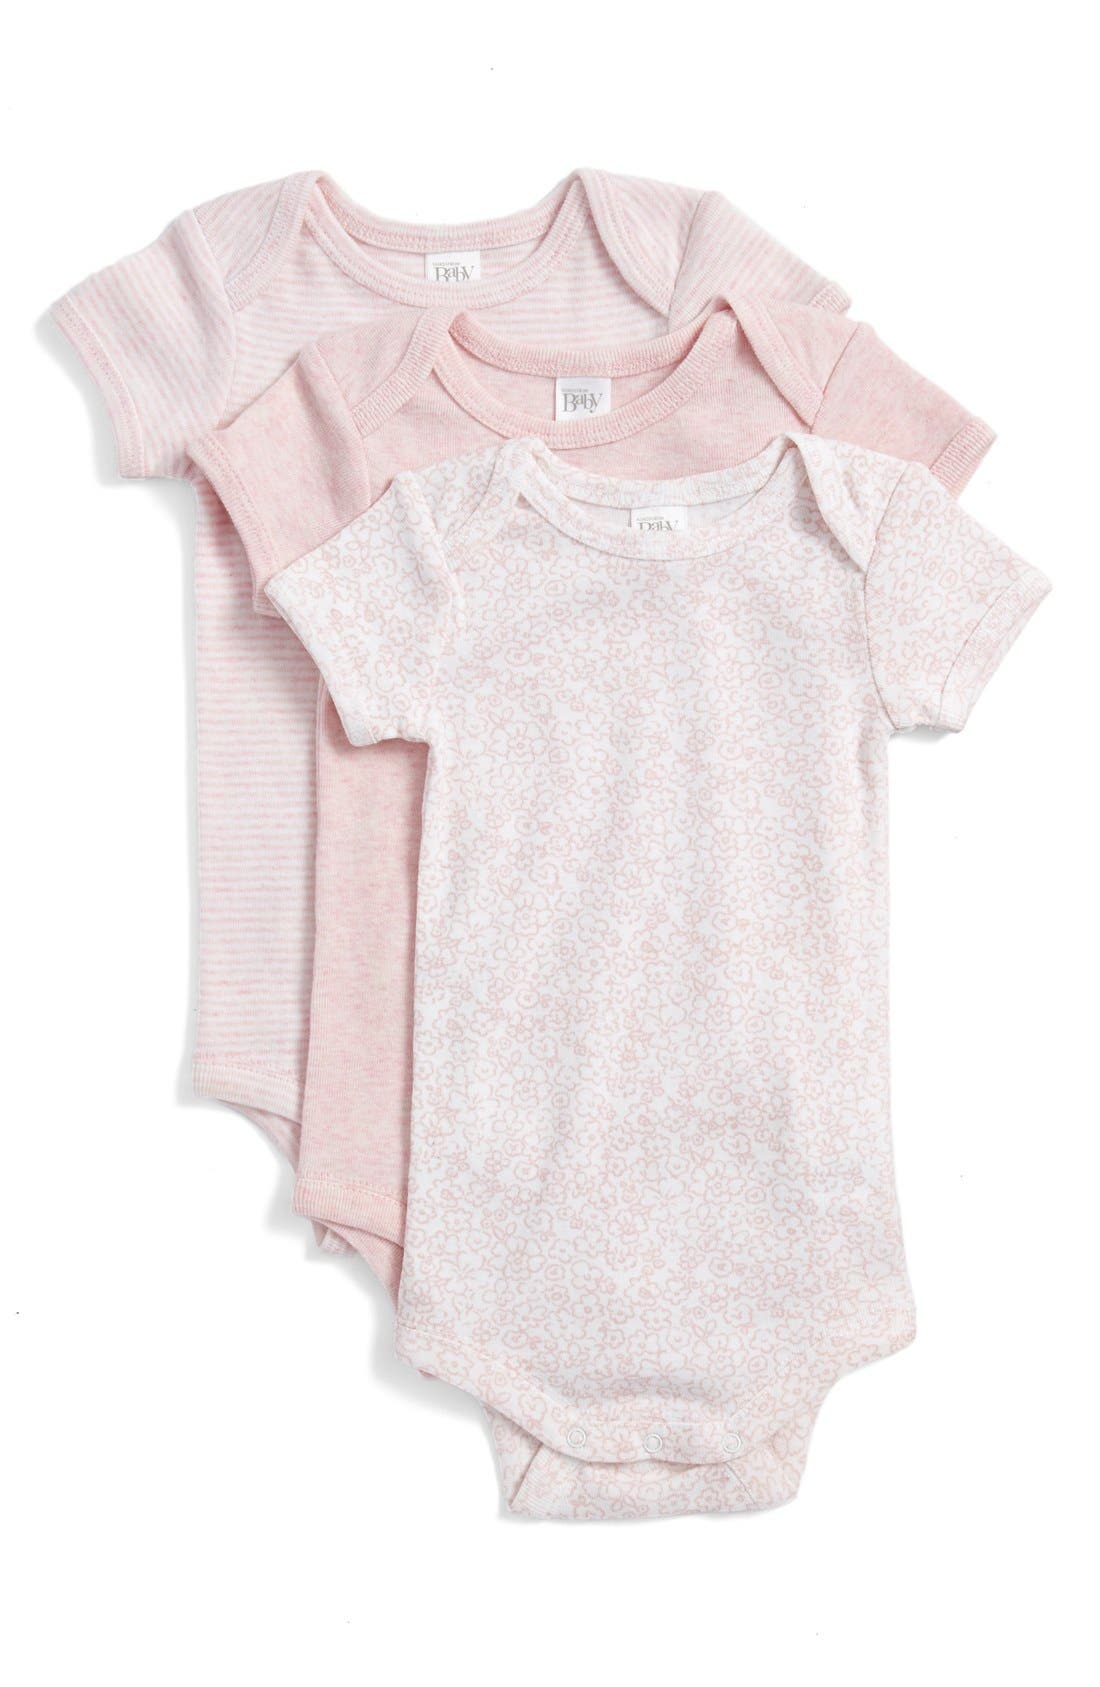 Main Image - Nordstrom Baby Short Sleeve Cotton Bodysuits (3-Pack) (Baby Girls)